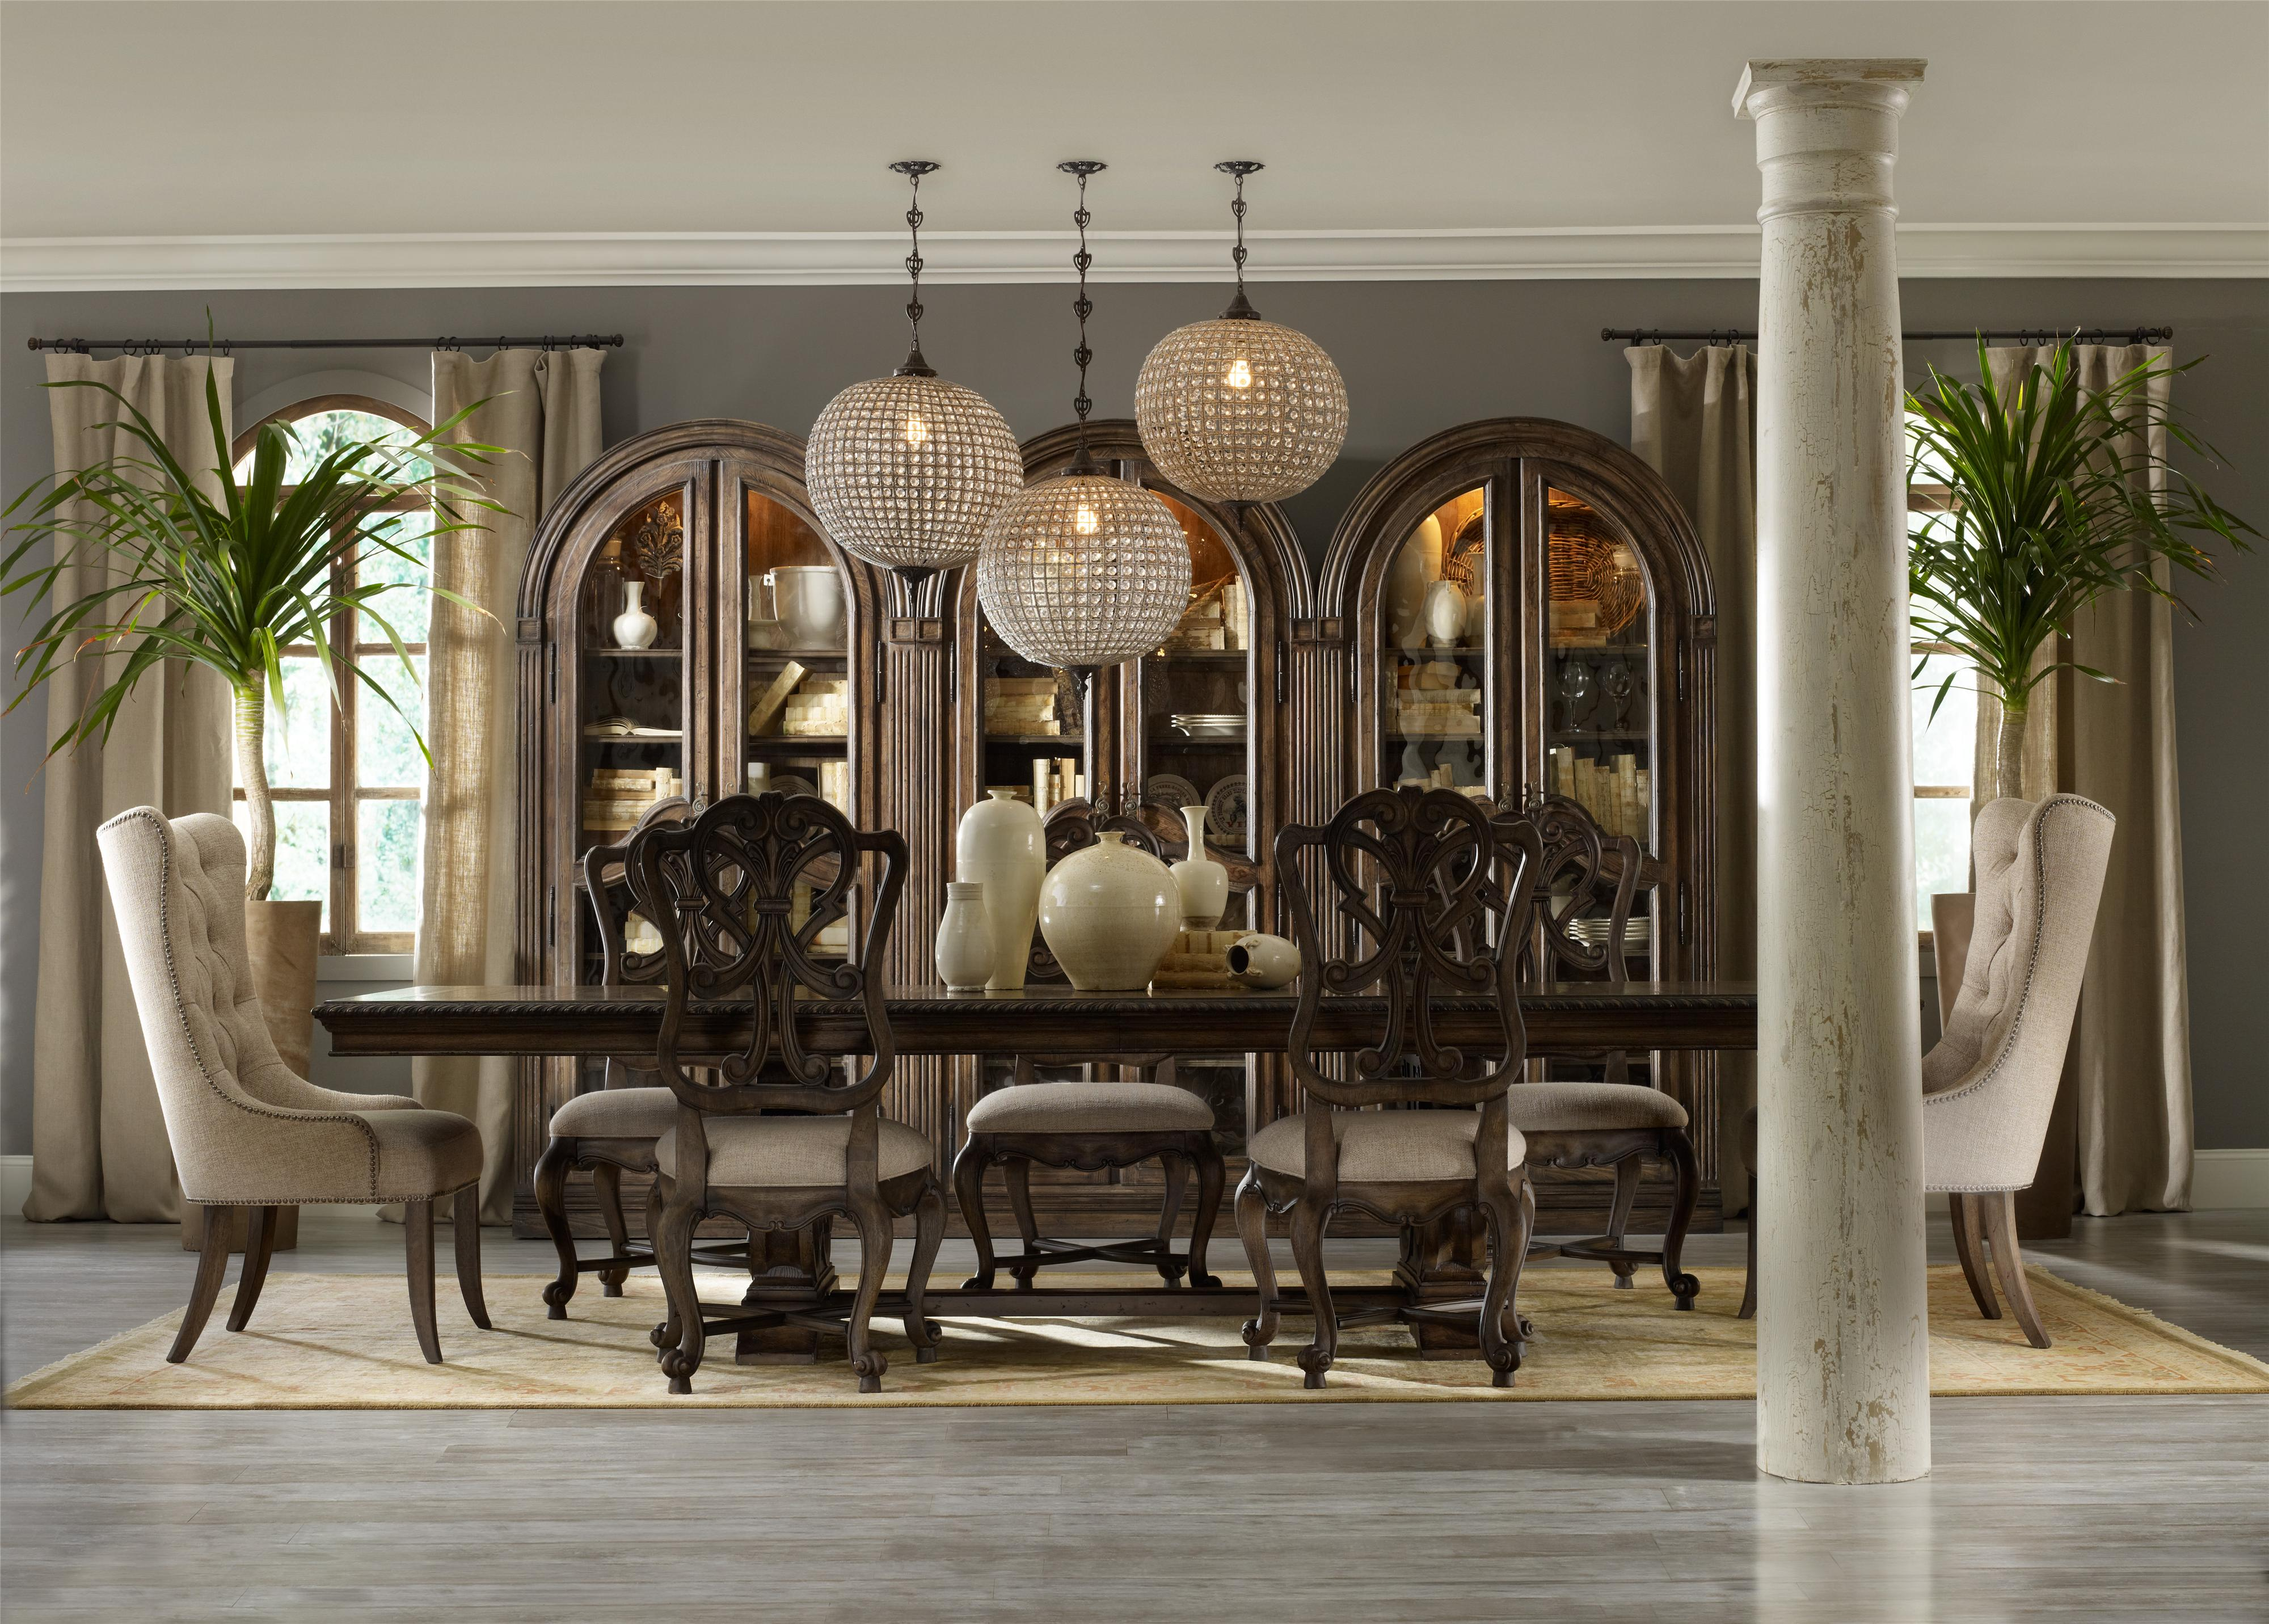 Rhapsody Rectangular Dining Group w/ 2 Tufted Chair by Hooker Furniture at Miller Waldrop Furniture and Decor